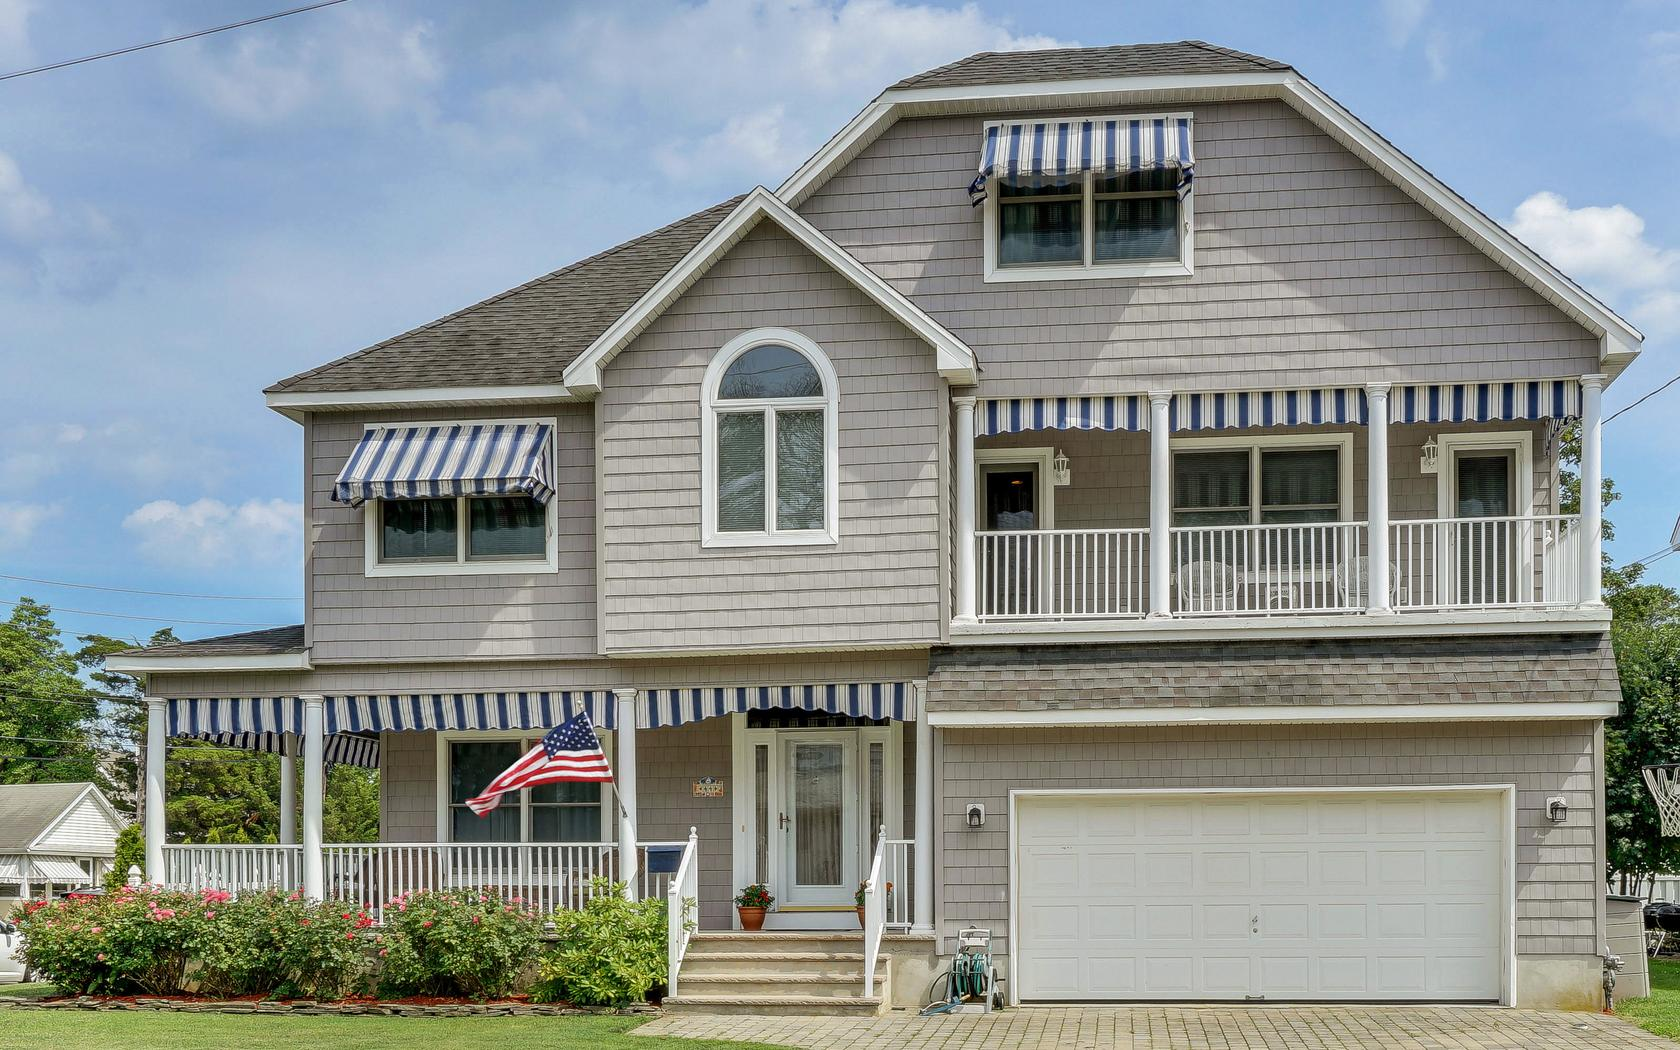 Single Family Home for Rent at Gracious Seashore Colonial 44 N Jackson Avenue Manasquan, New Jersey 08736 United States